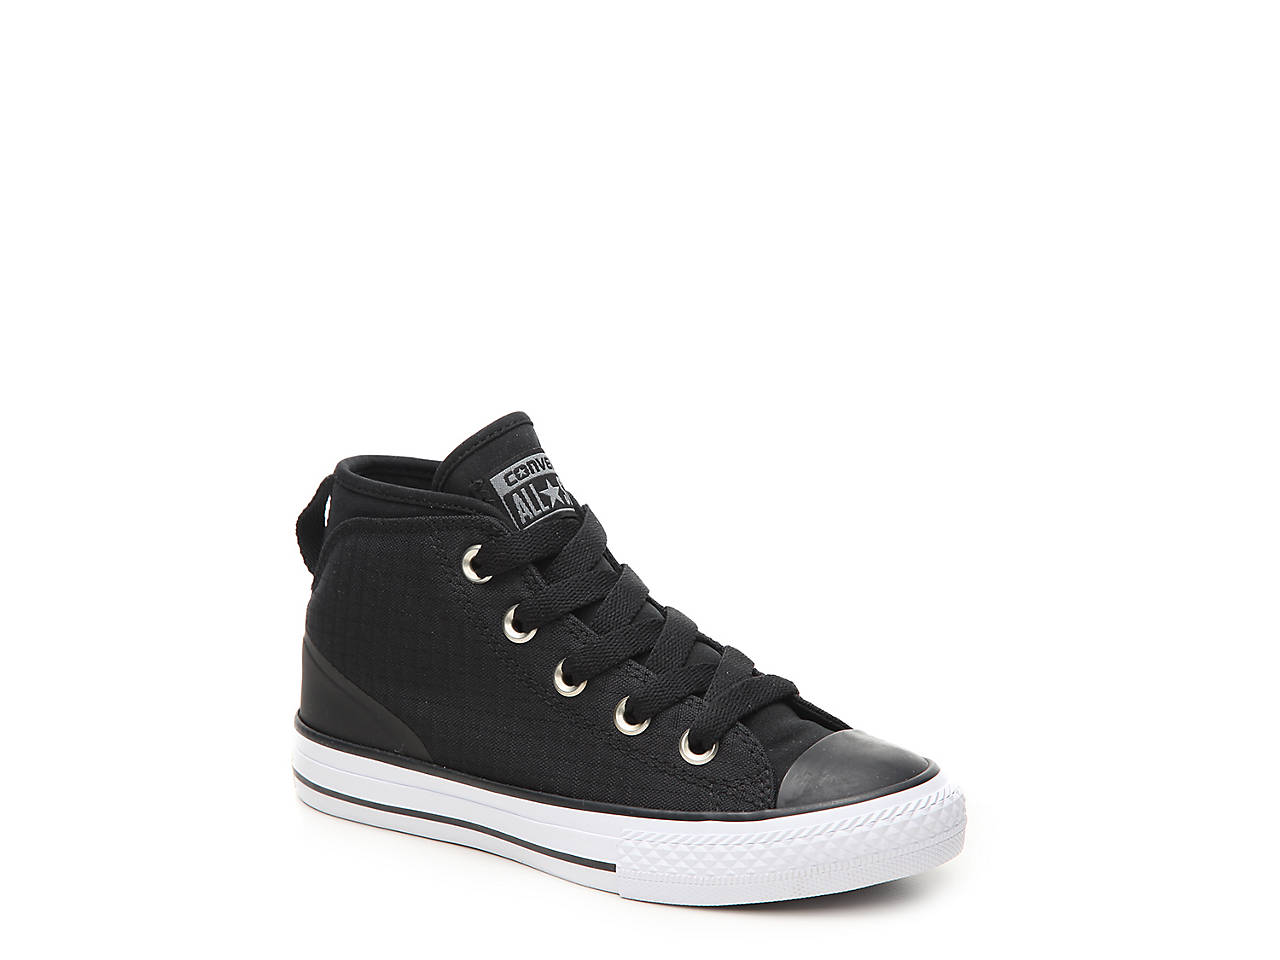 25b44770d5c Chuck Taylor All Star Syde Street Toddler   Youth High-Top Sneaker